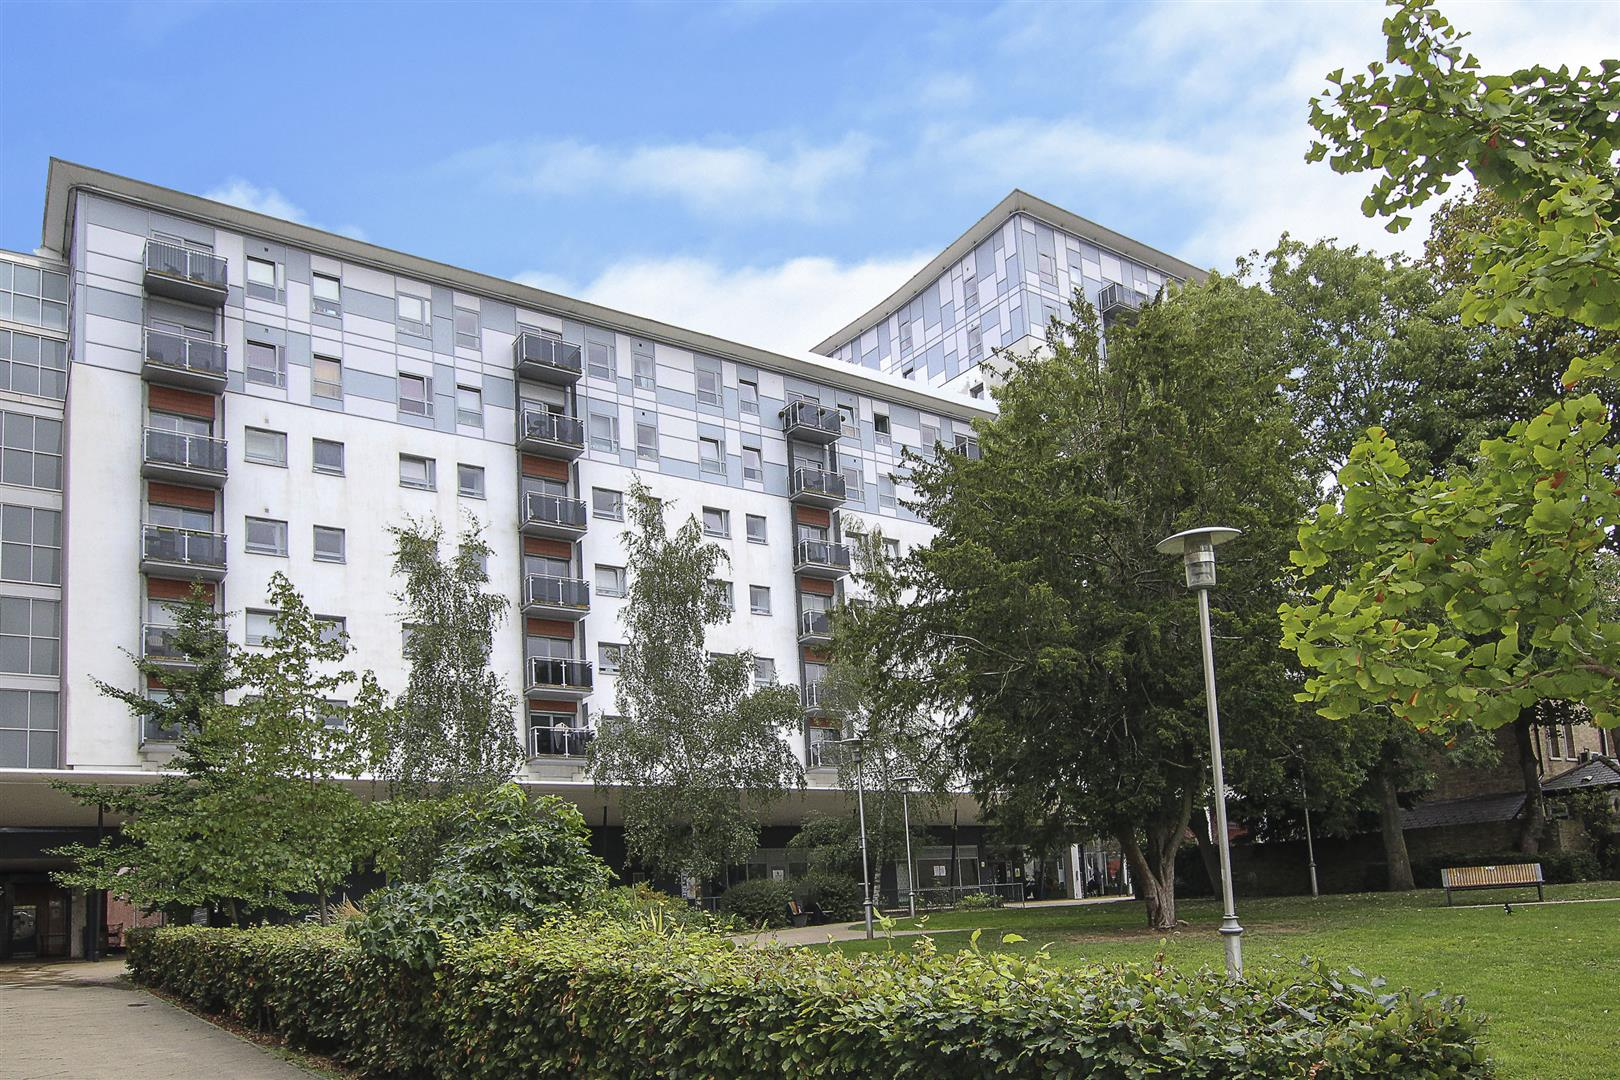 Becket House, New Road, Brentwood